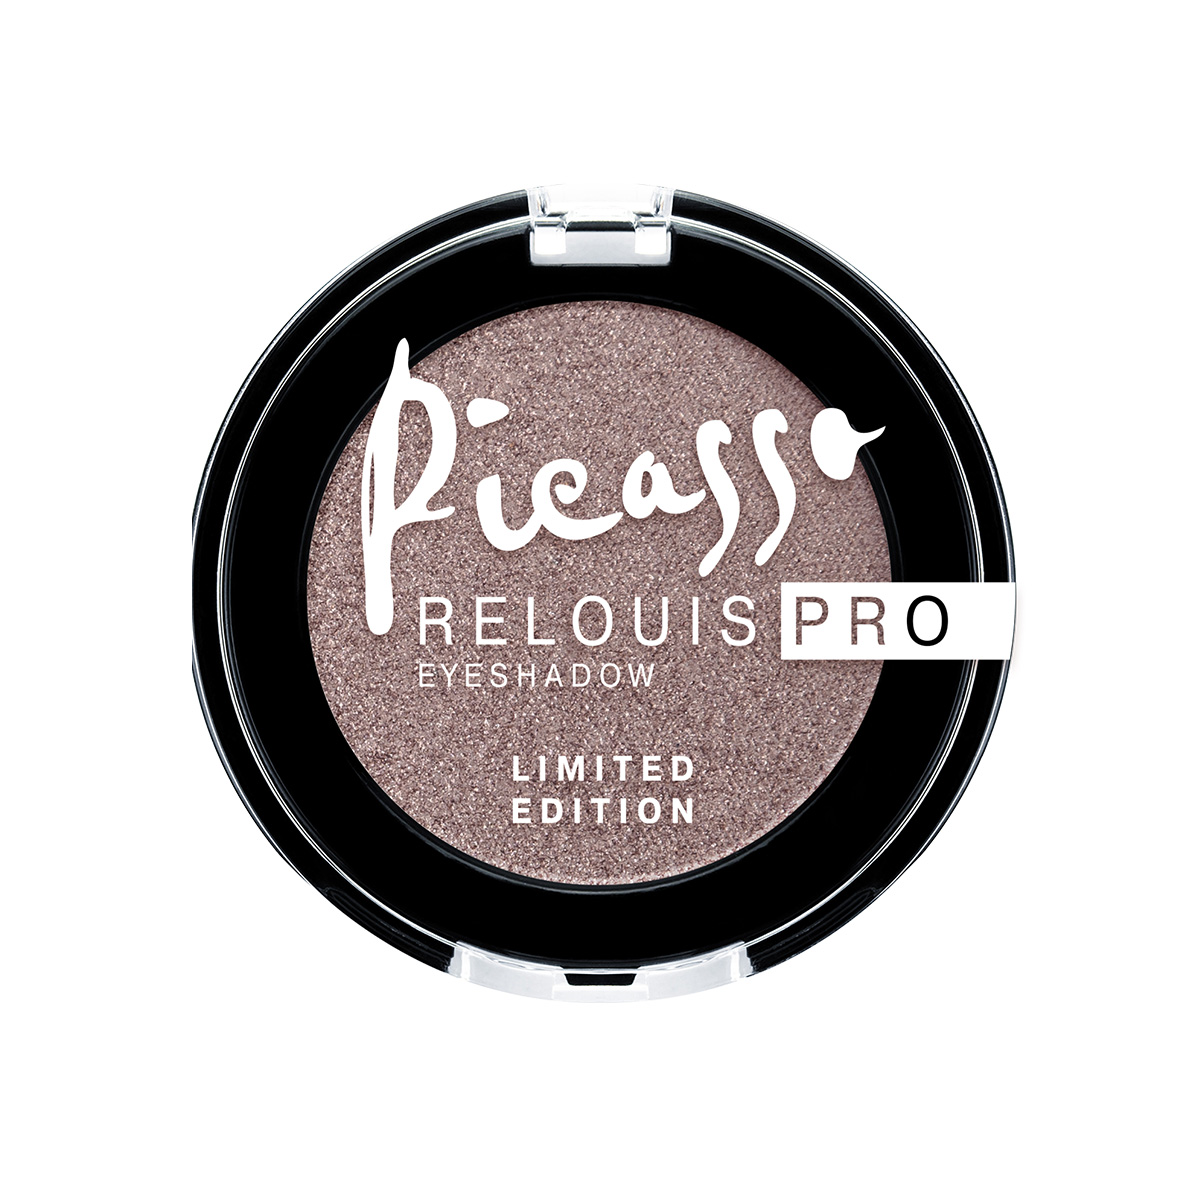 Relouis Pro Picasso Limited Edition 05 DUSTY ROSE